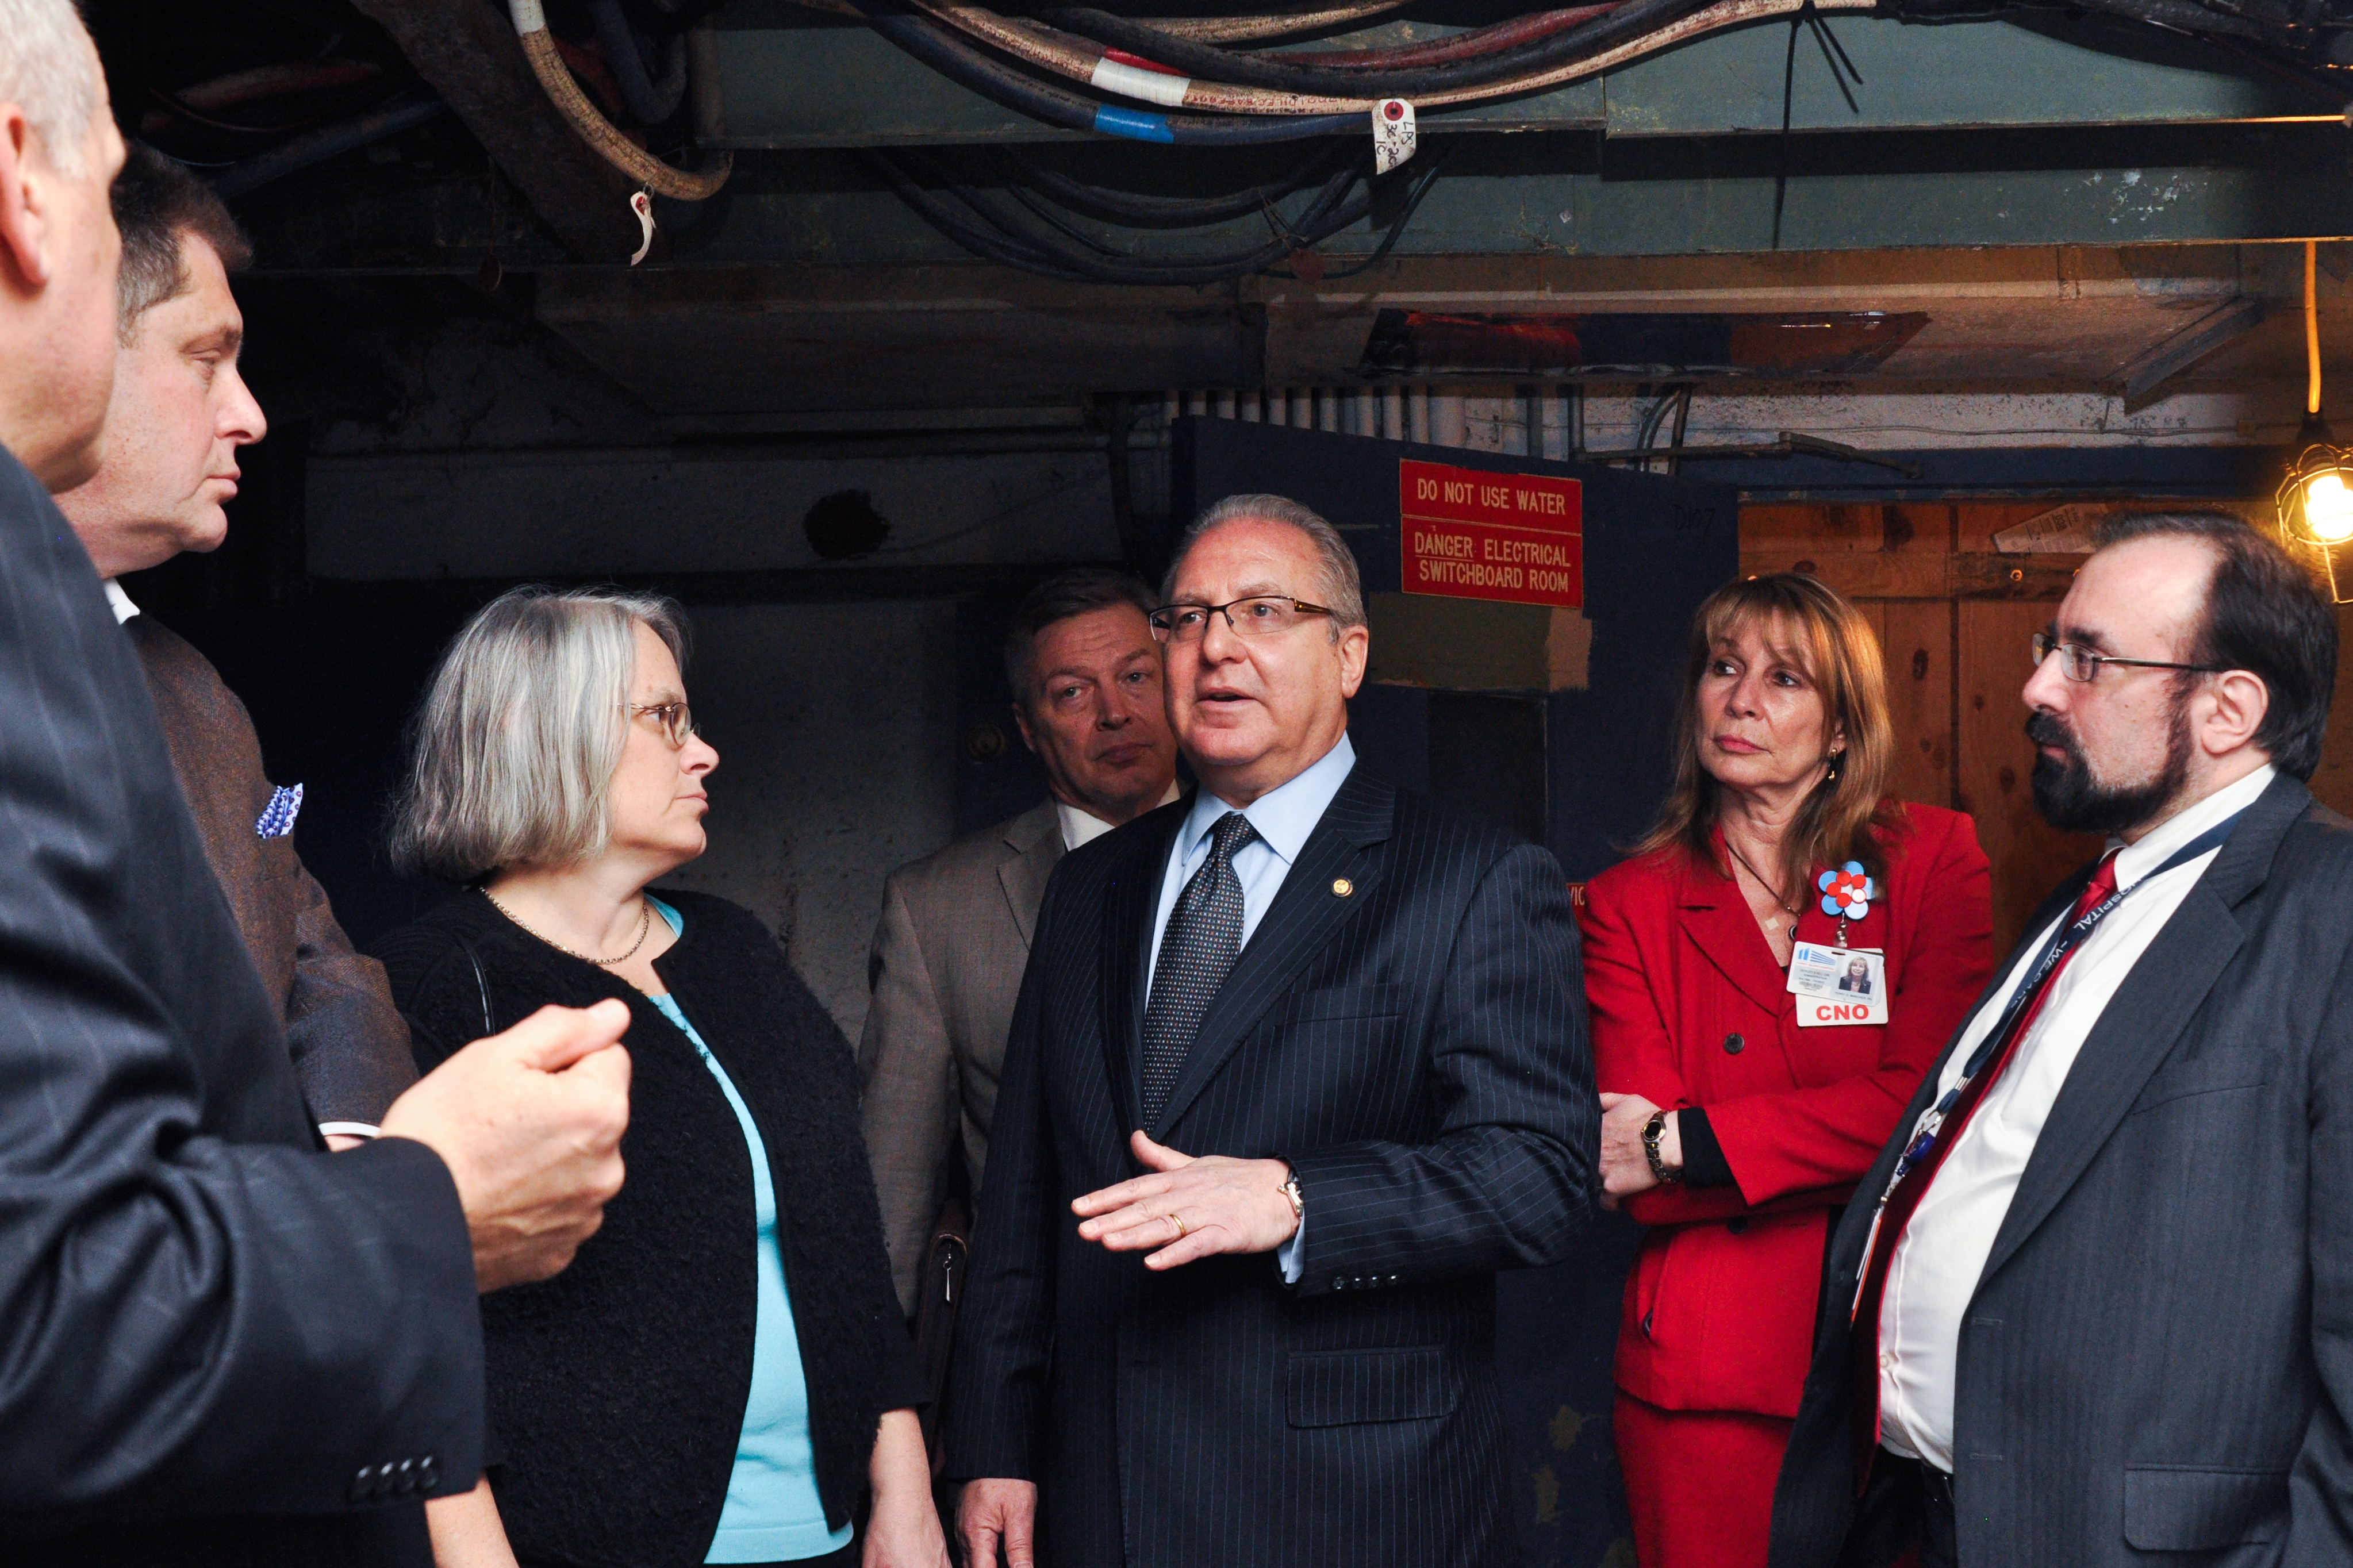 Assemblyman Steven Cymbrowitz visits Coney Island Hospital shortly after Superstorm Sandy. With him are Executive Director of Coney Island Hospital Arthur Wagner, Assembly Member Alec Brook-Krasny, Assembly Member Helene Weinstein, Coney Island Hospital's Director of Department of Operations Peter Lucey (behind M/A Cymbrowitz), Coney Island Hospital's Chief of Nursing Terry Mancher, and Coney Island Hospital's Chief Medical Officer Dr. John Maese.